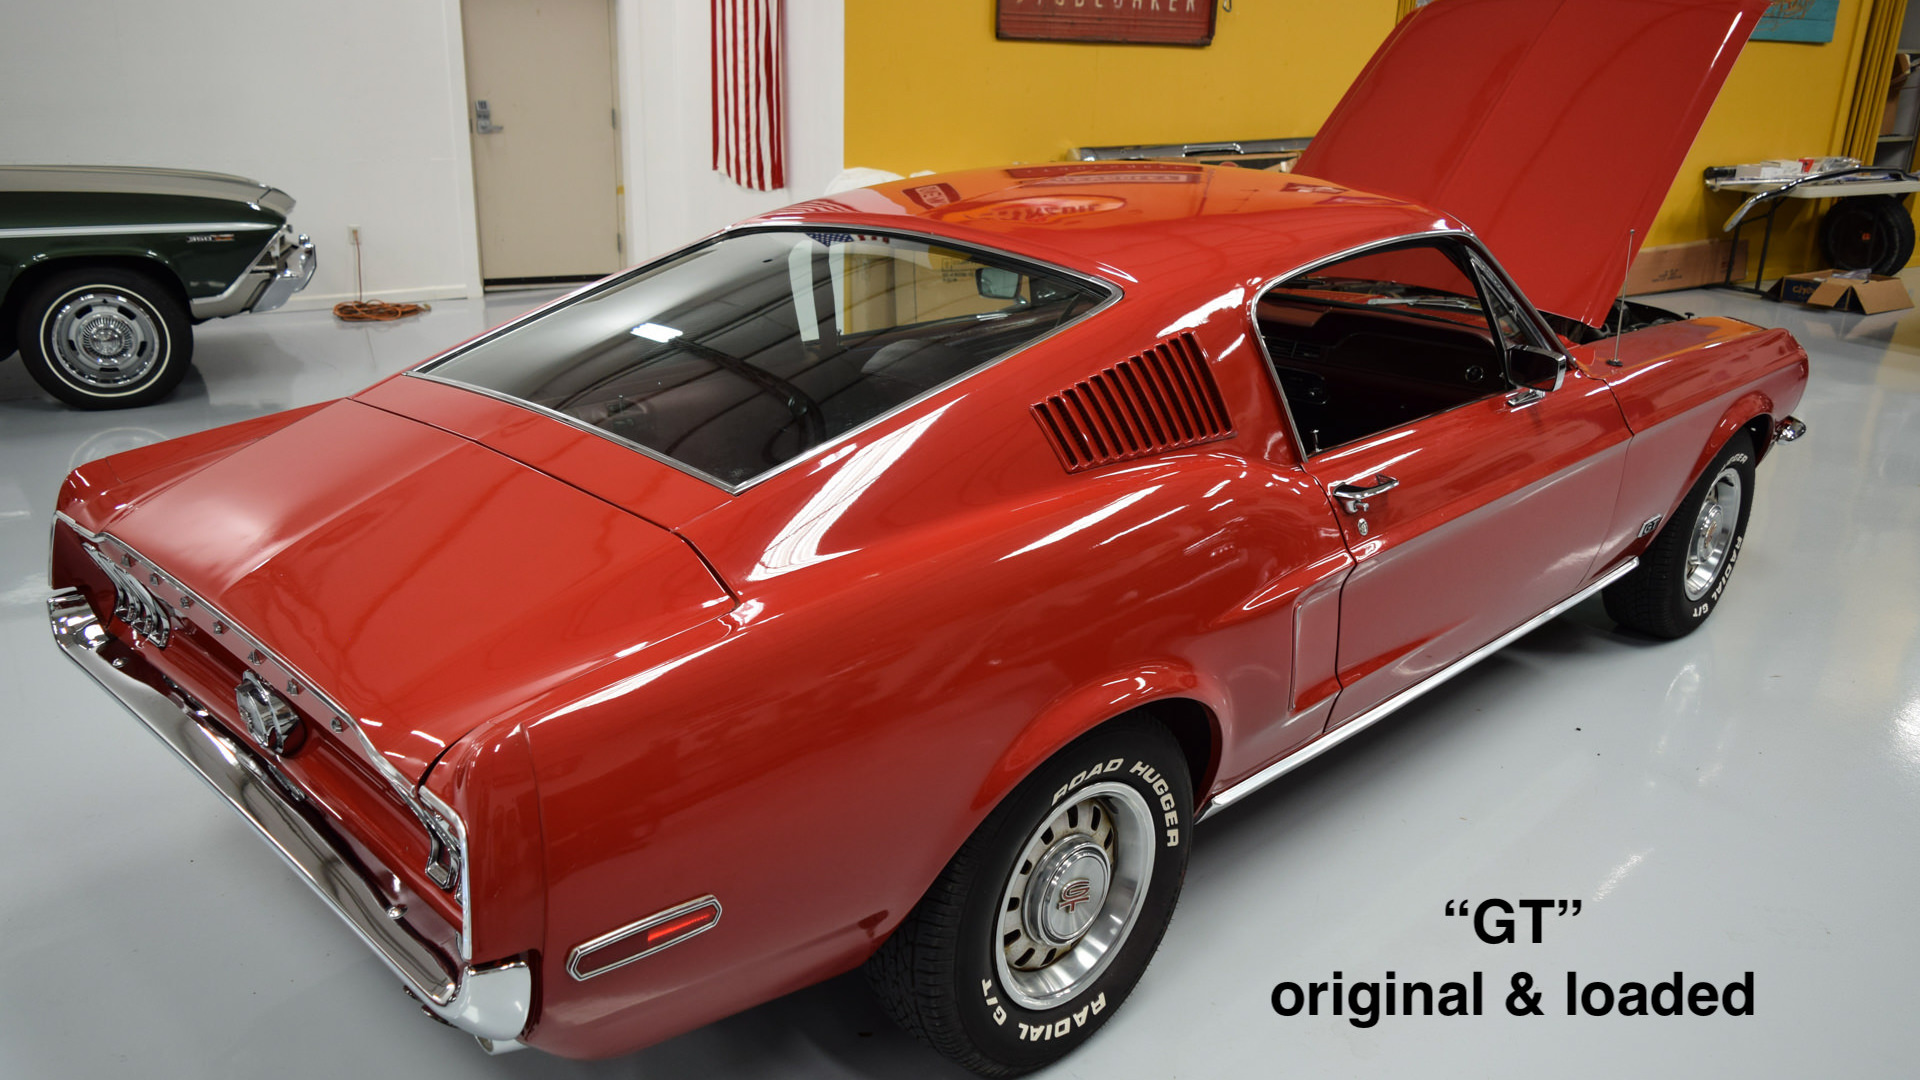 1968 Mustang fastback GT Candy Apple Red J code-23